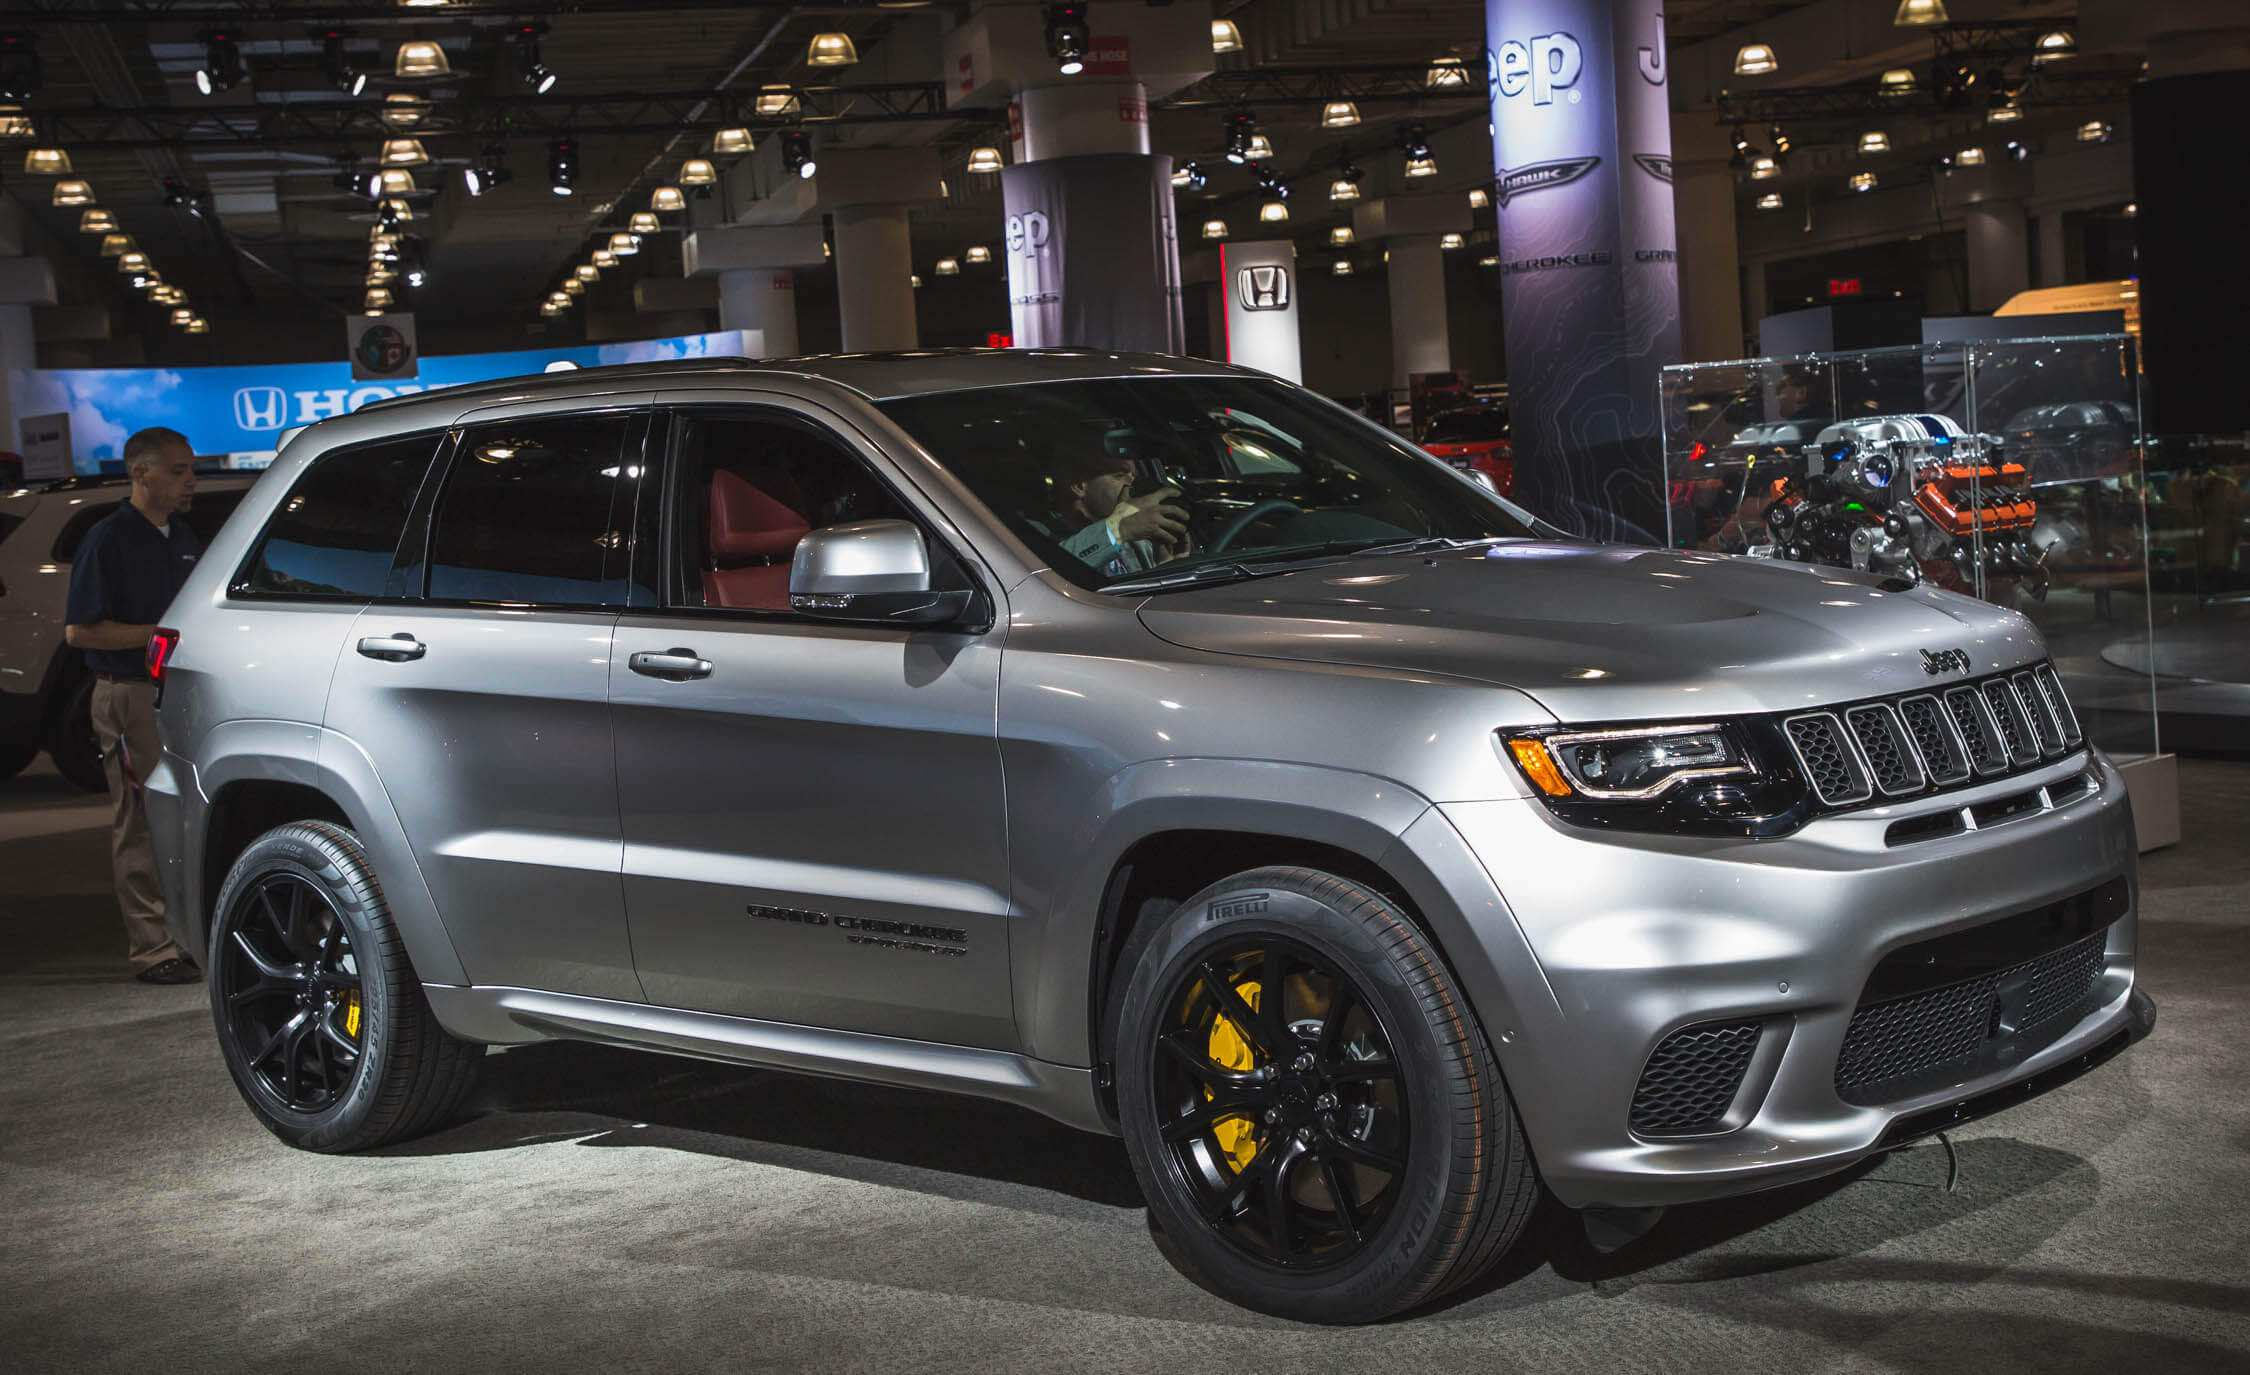 86 Gallery of Difference Between 2018 And 2019 Jeep Cherokee Release Date Research New for Difference Between 2018 And 2019 Jeep Cherokee Release Date